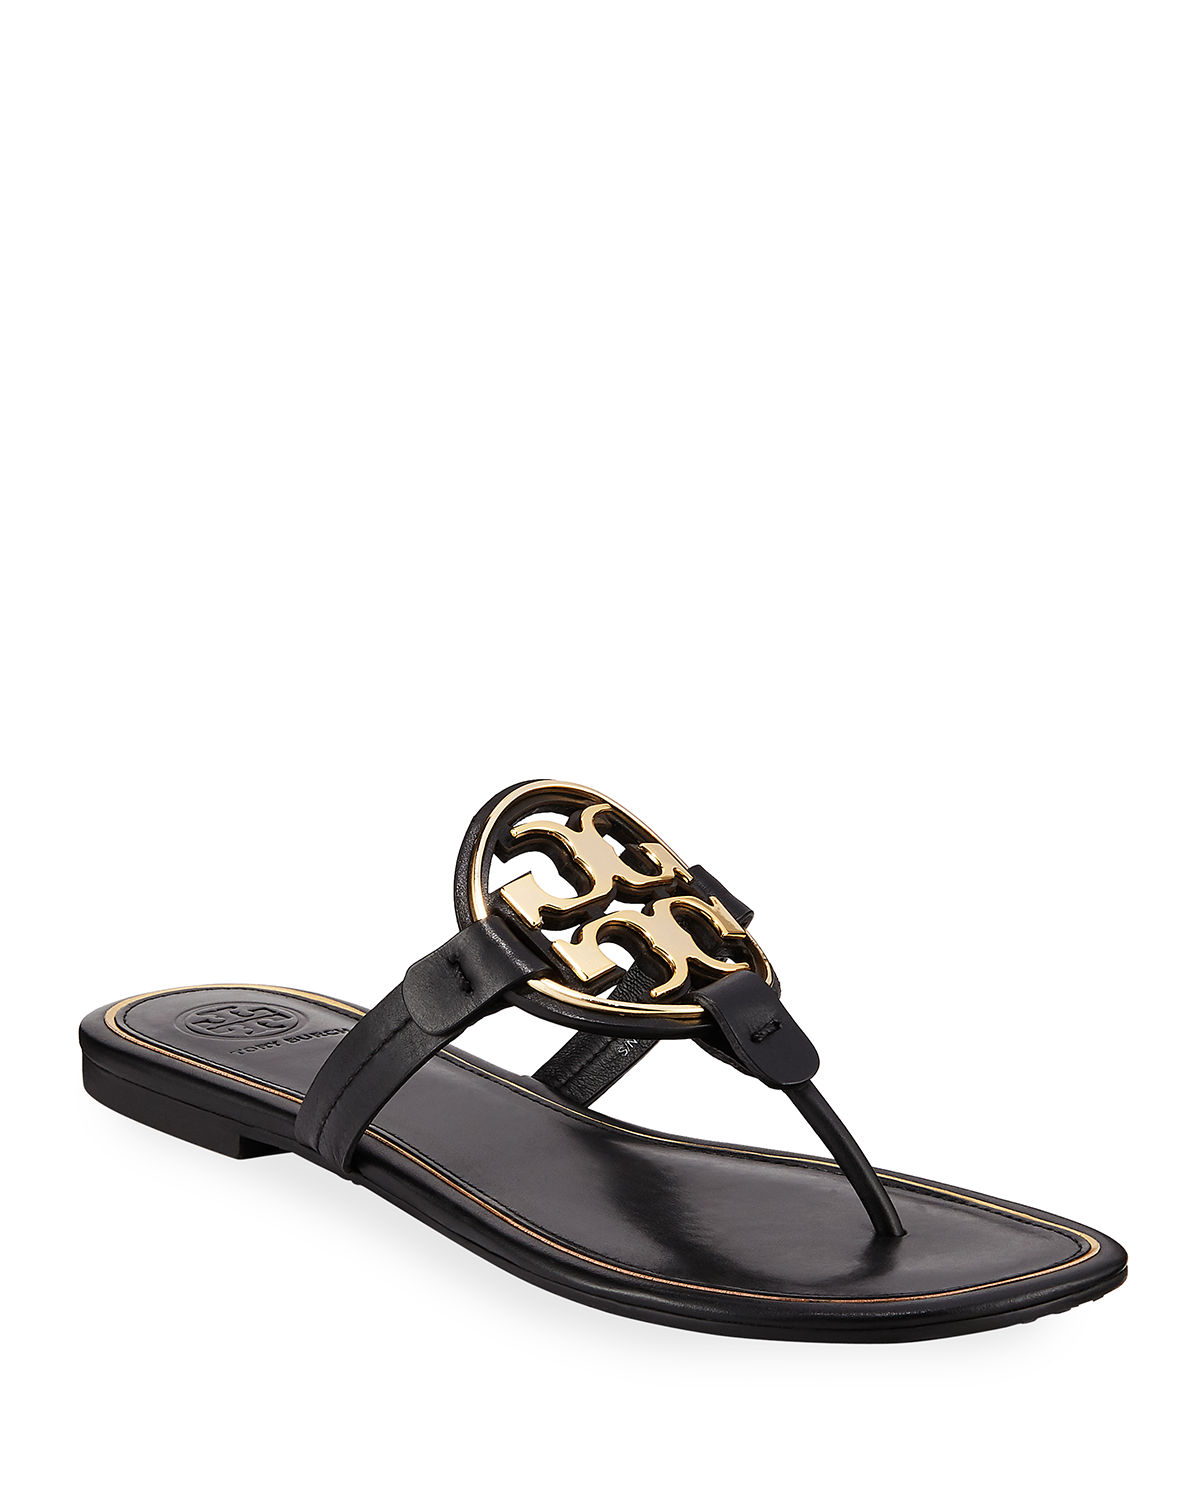 86853efb7 Tory Burch Miller Flat Metal Logo Slide Sandals